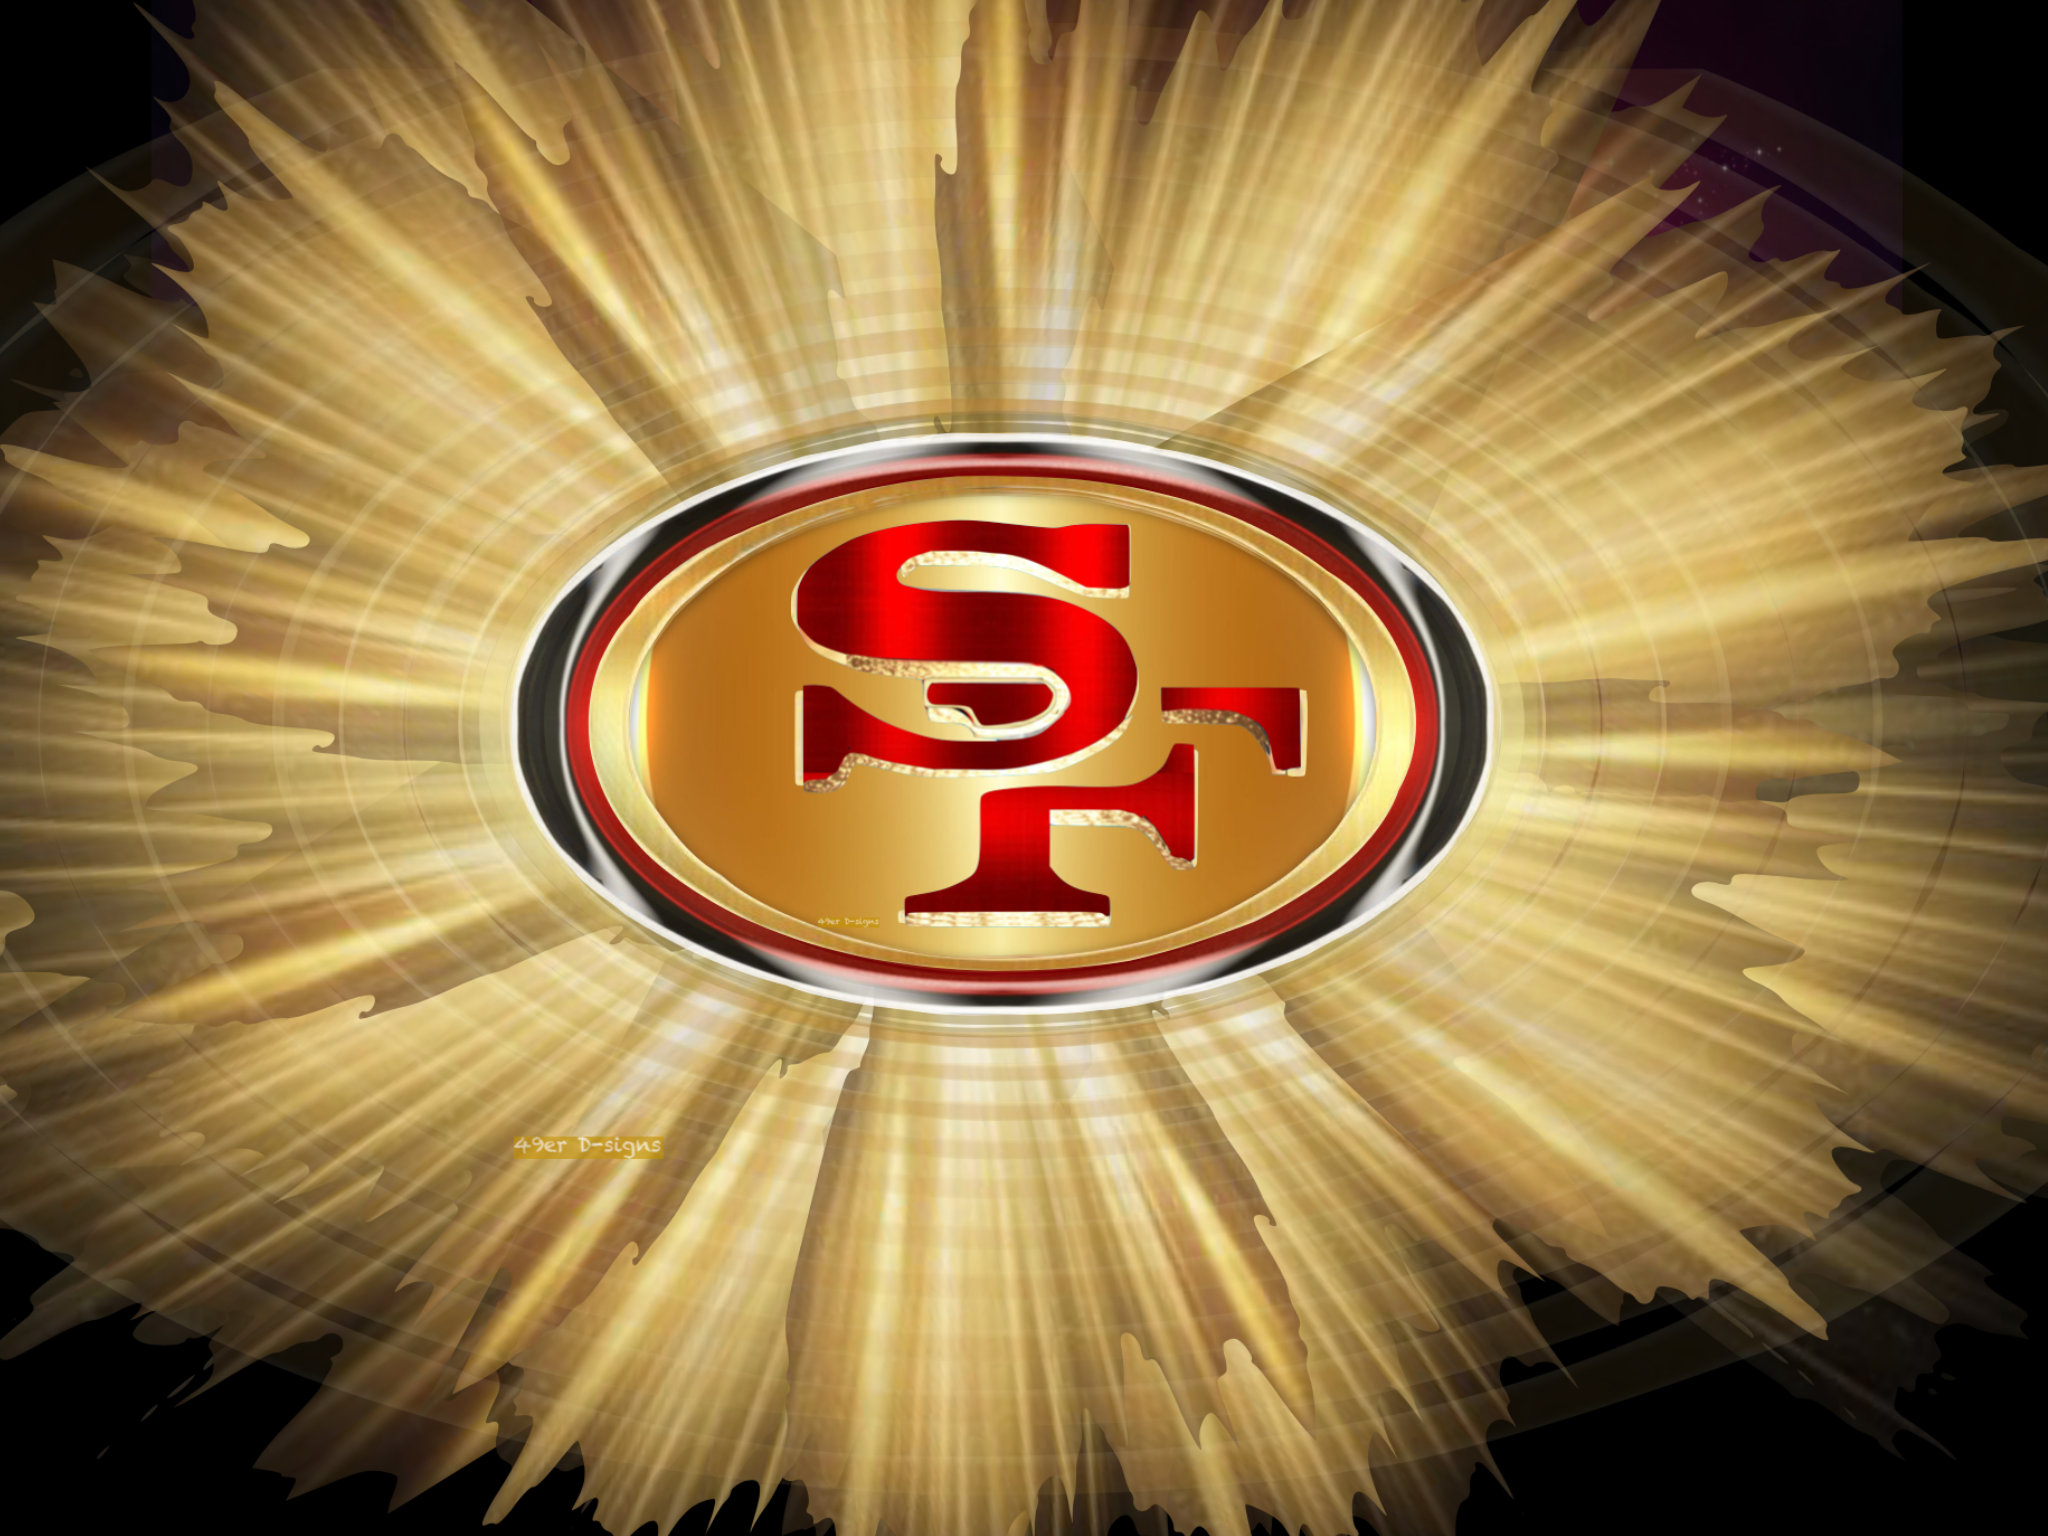 Pin by 49er Dsigns on 49er Logos San francisco 49ers logo